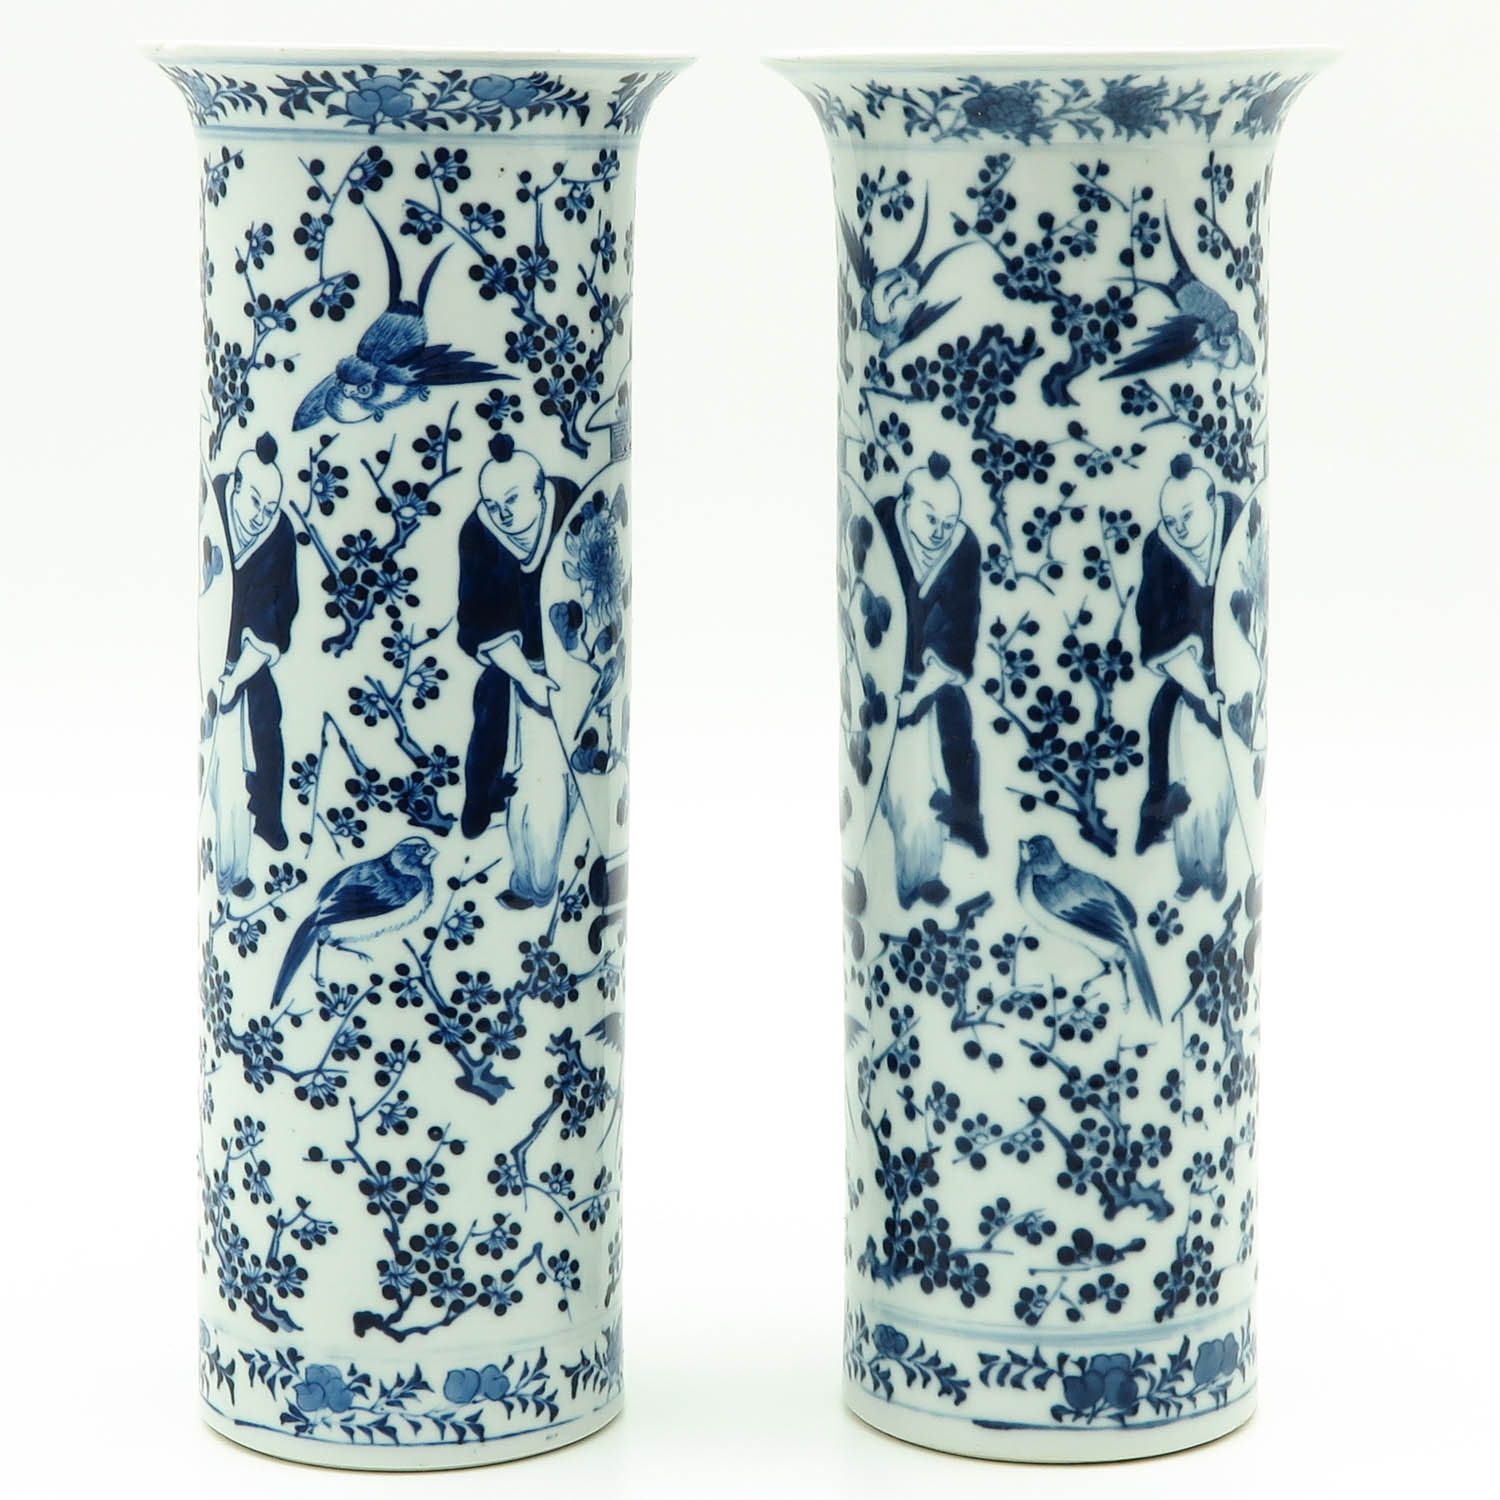 Lot 7007 - A Pair of Blue and White Vases